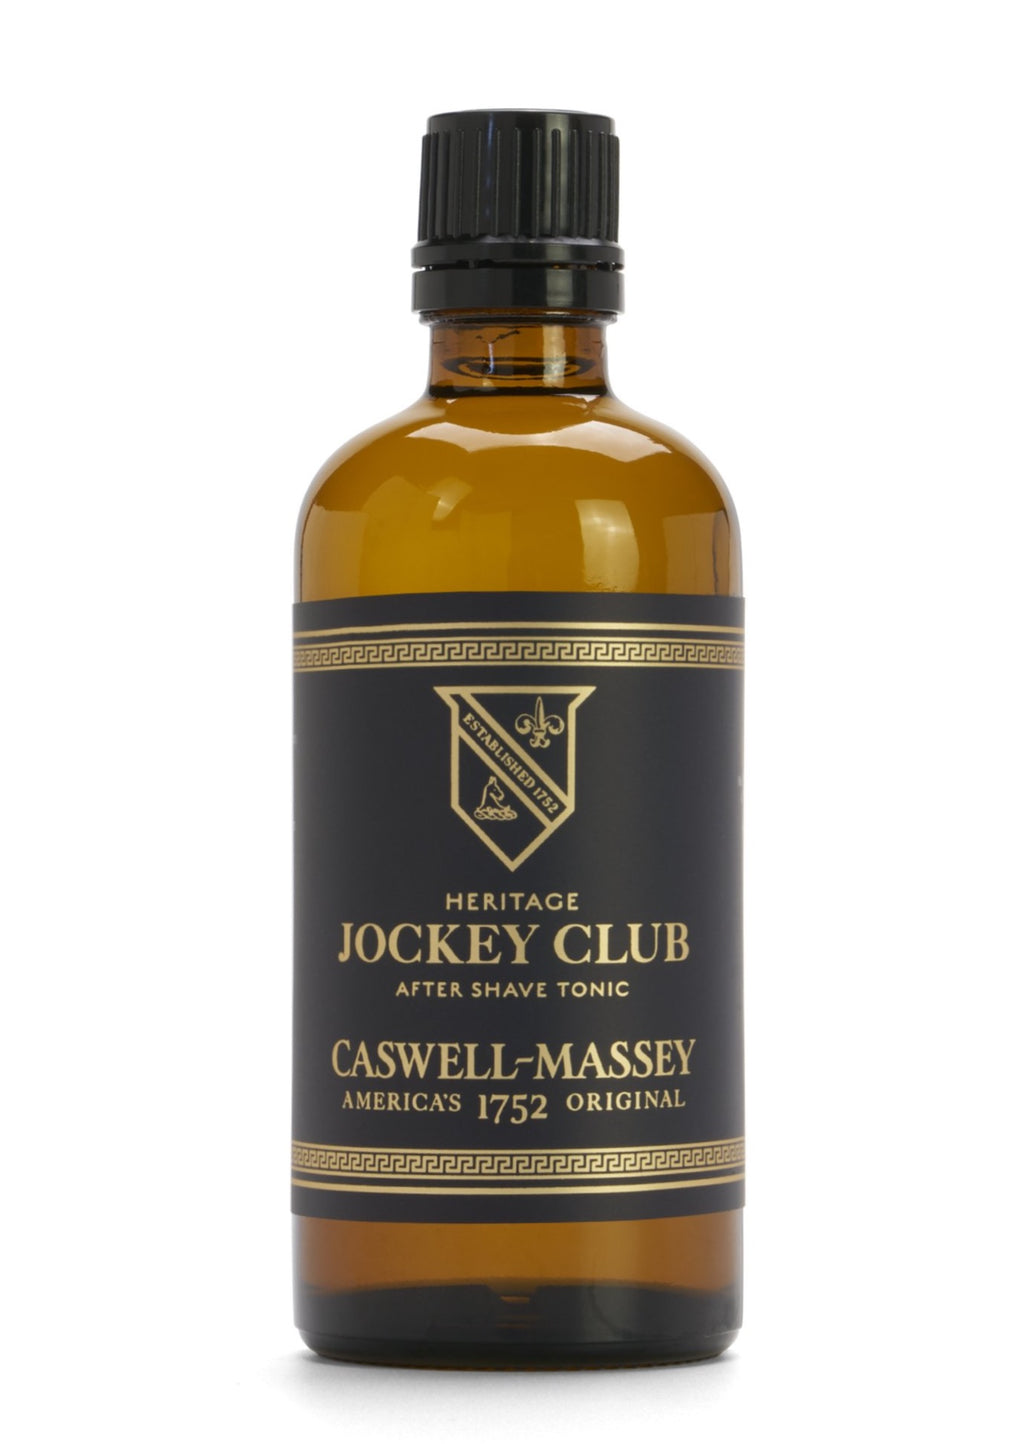 After Shave Tonic - Heritage Jockey Club